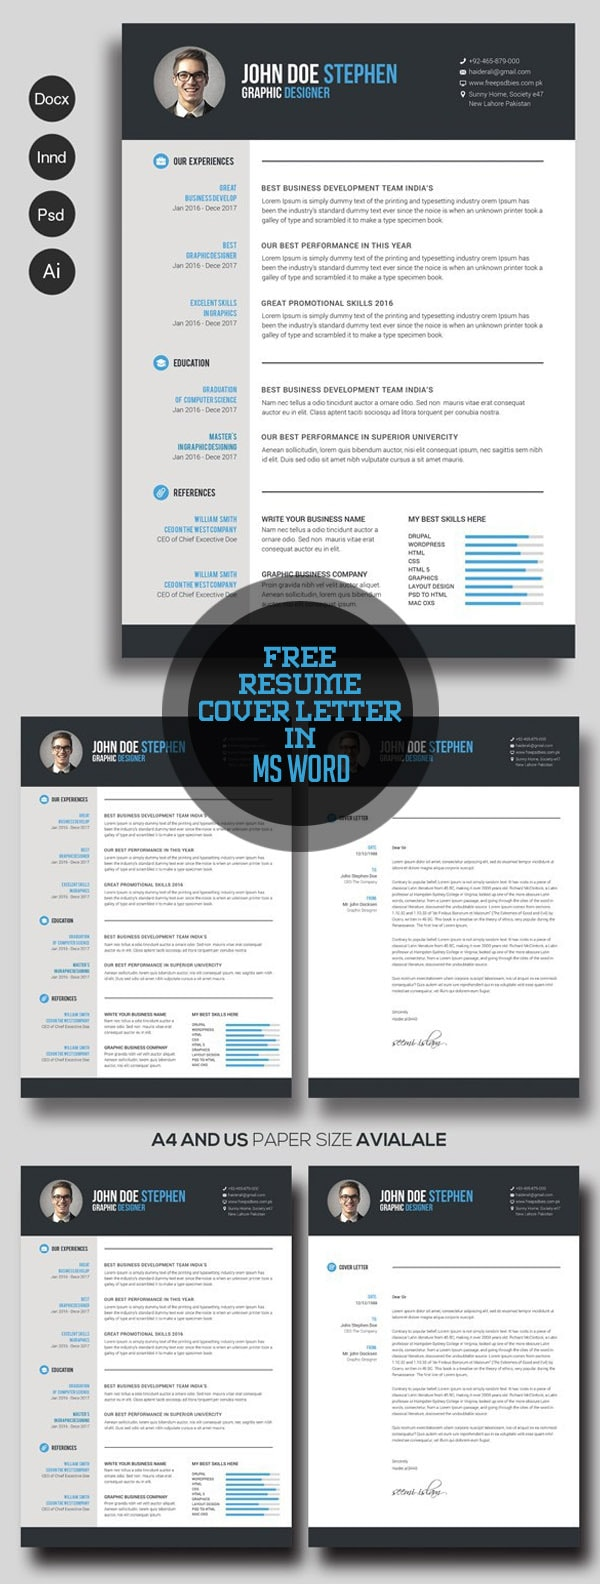 Template Resume / CV Terbaru 2017 - Free Resume & Cover Letter in Ms Word